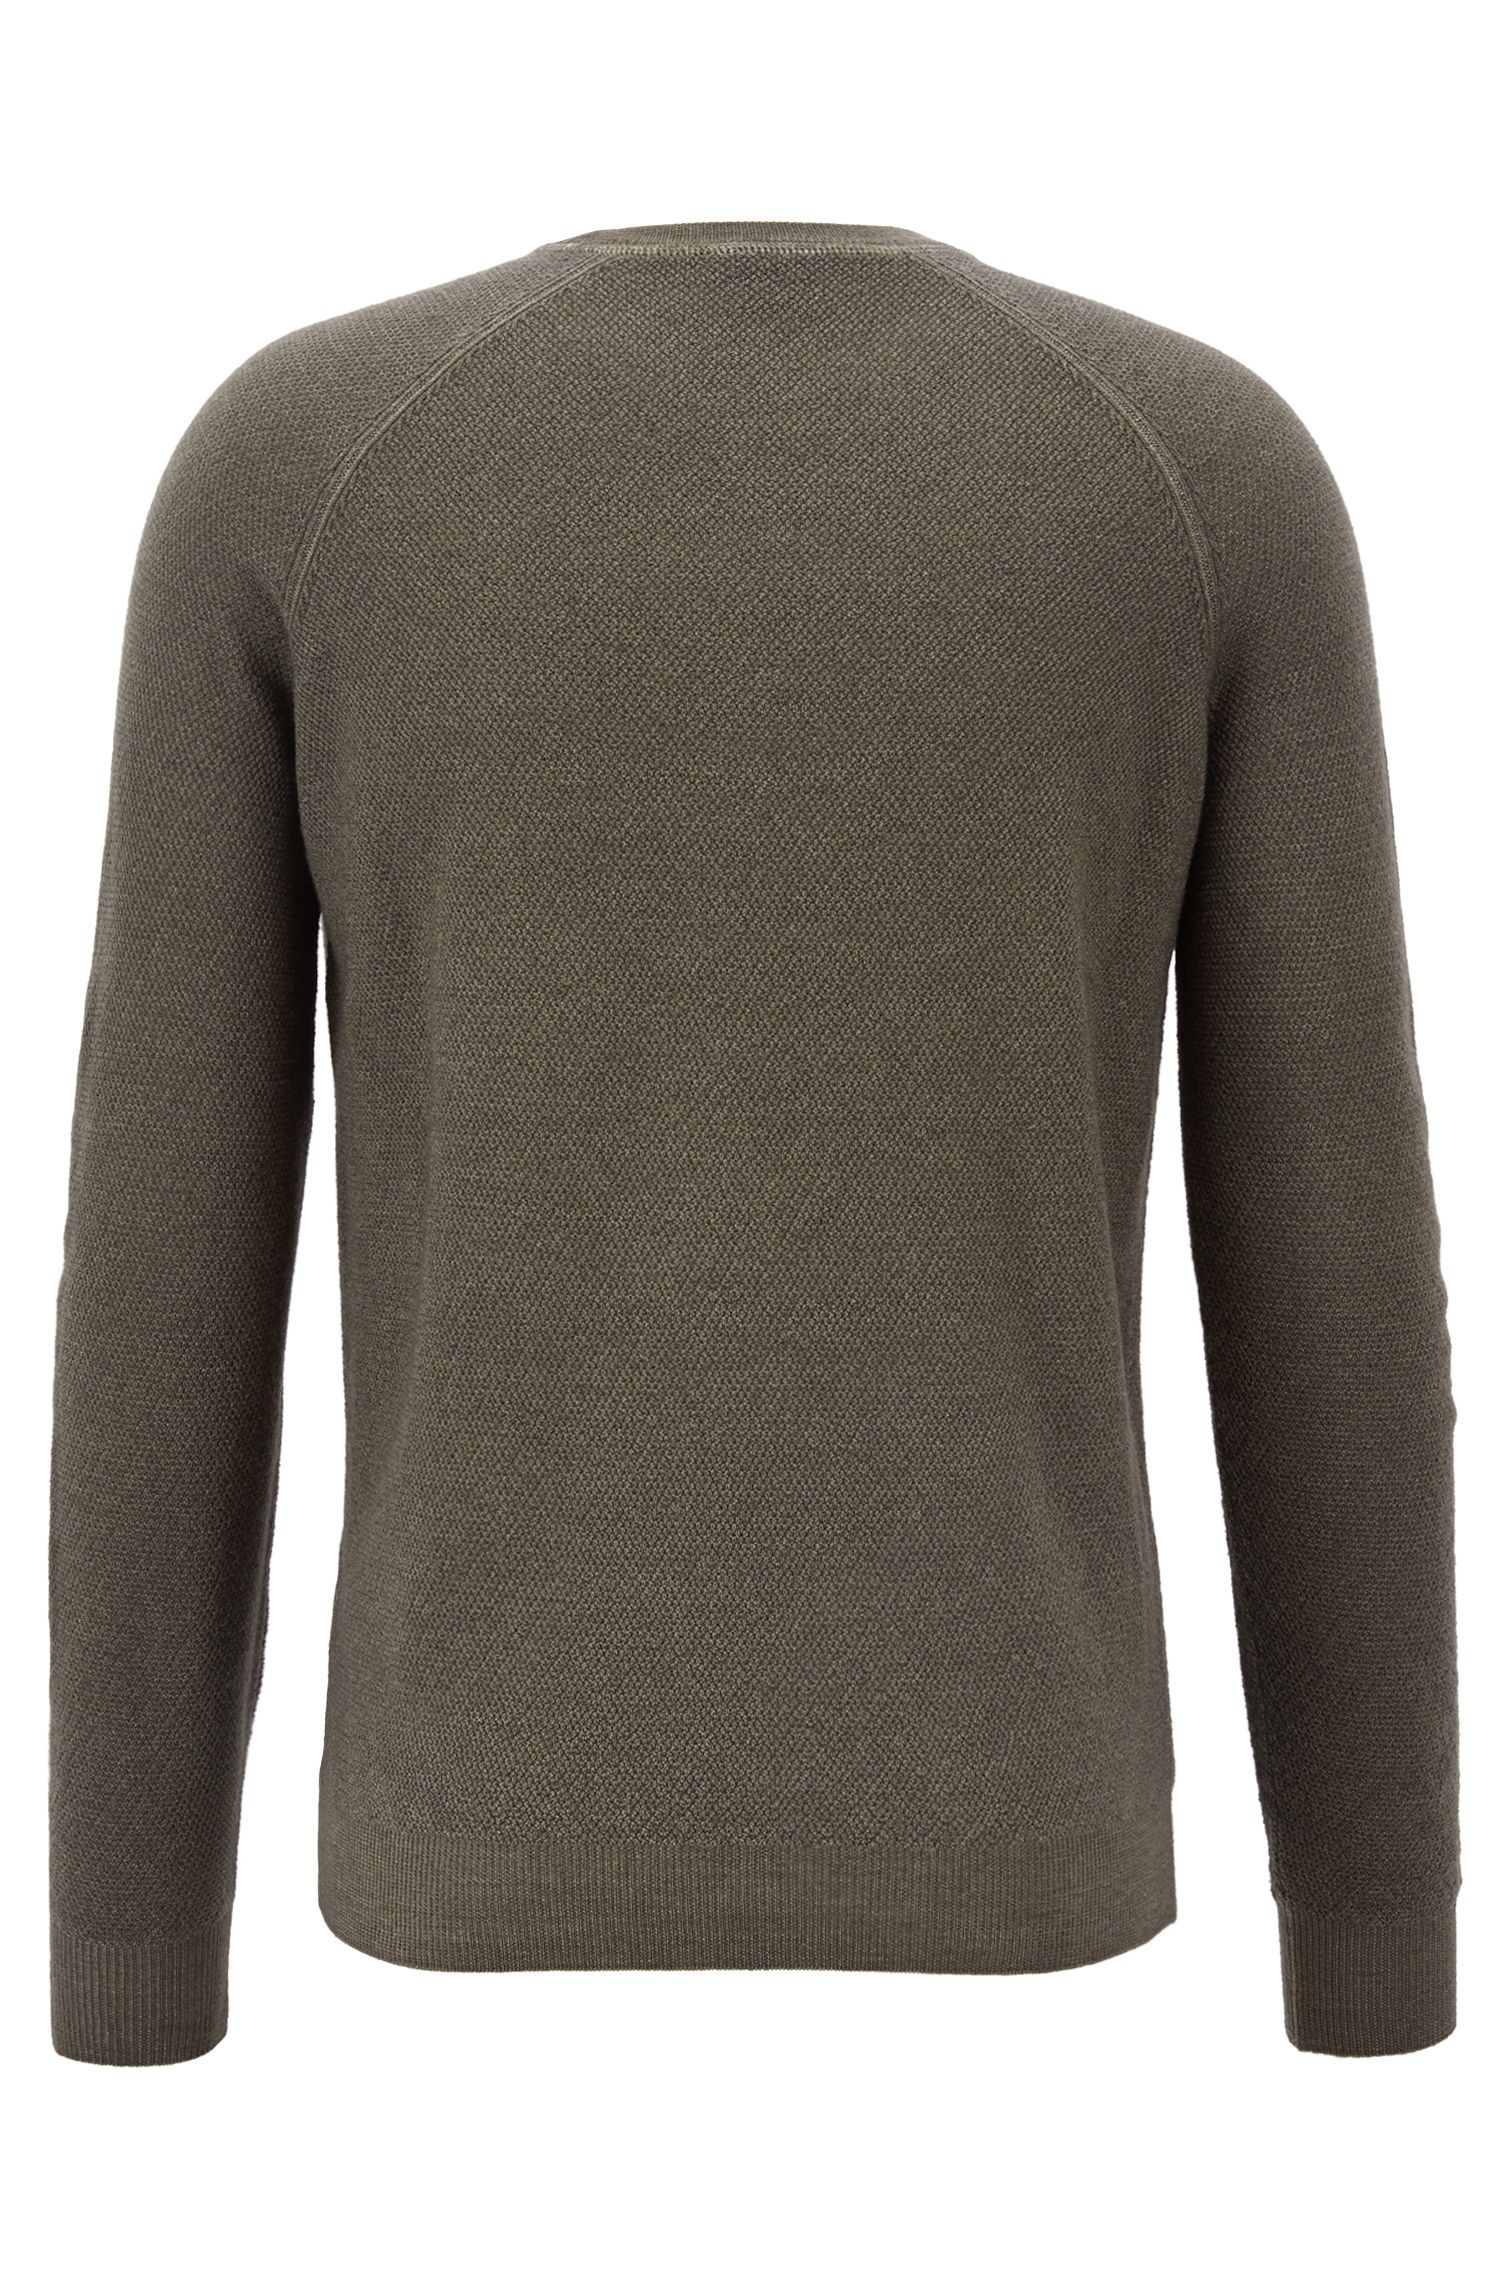 Crew-neck sweater in lightweight merino wool piqué, Dark Green